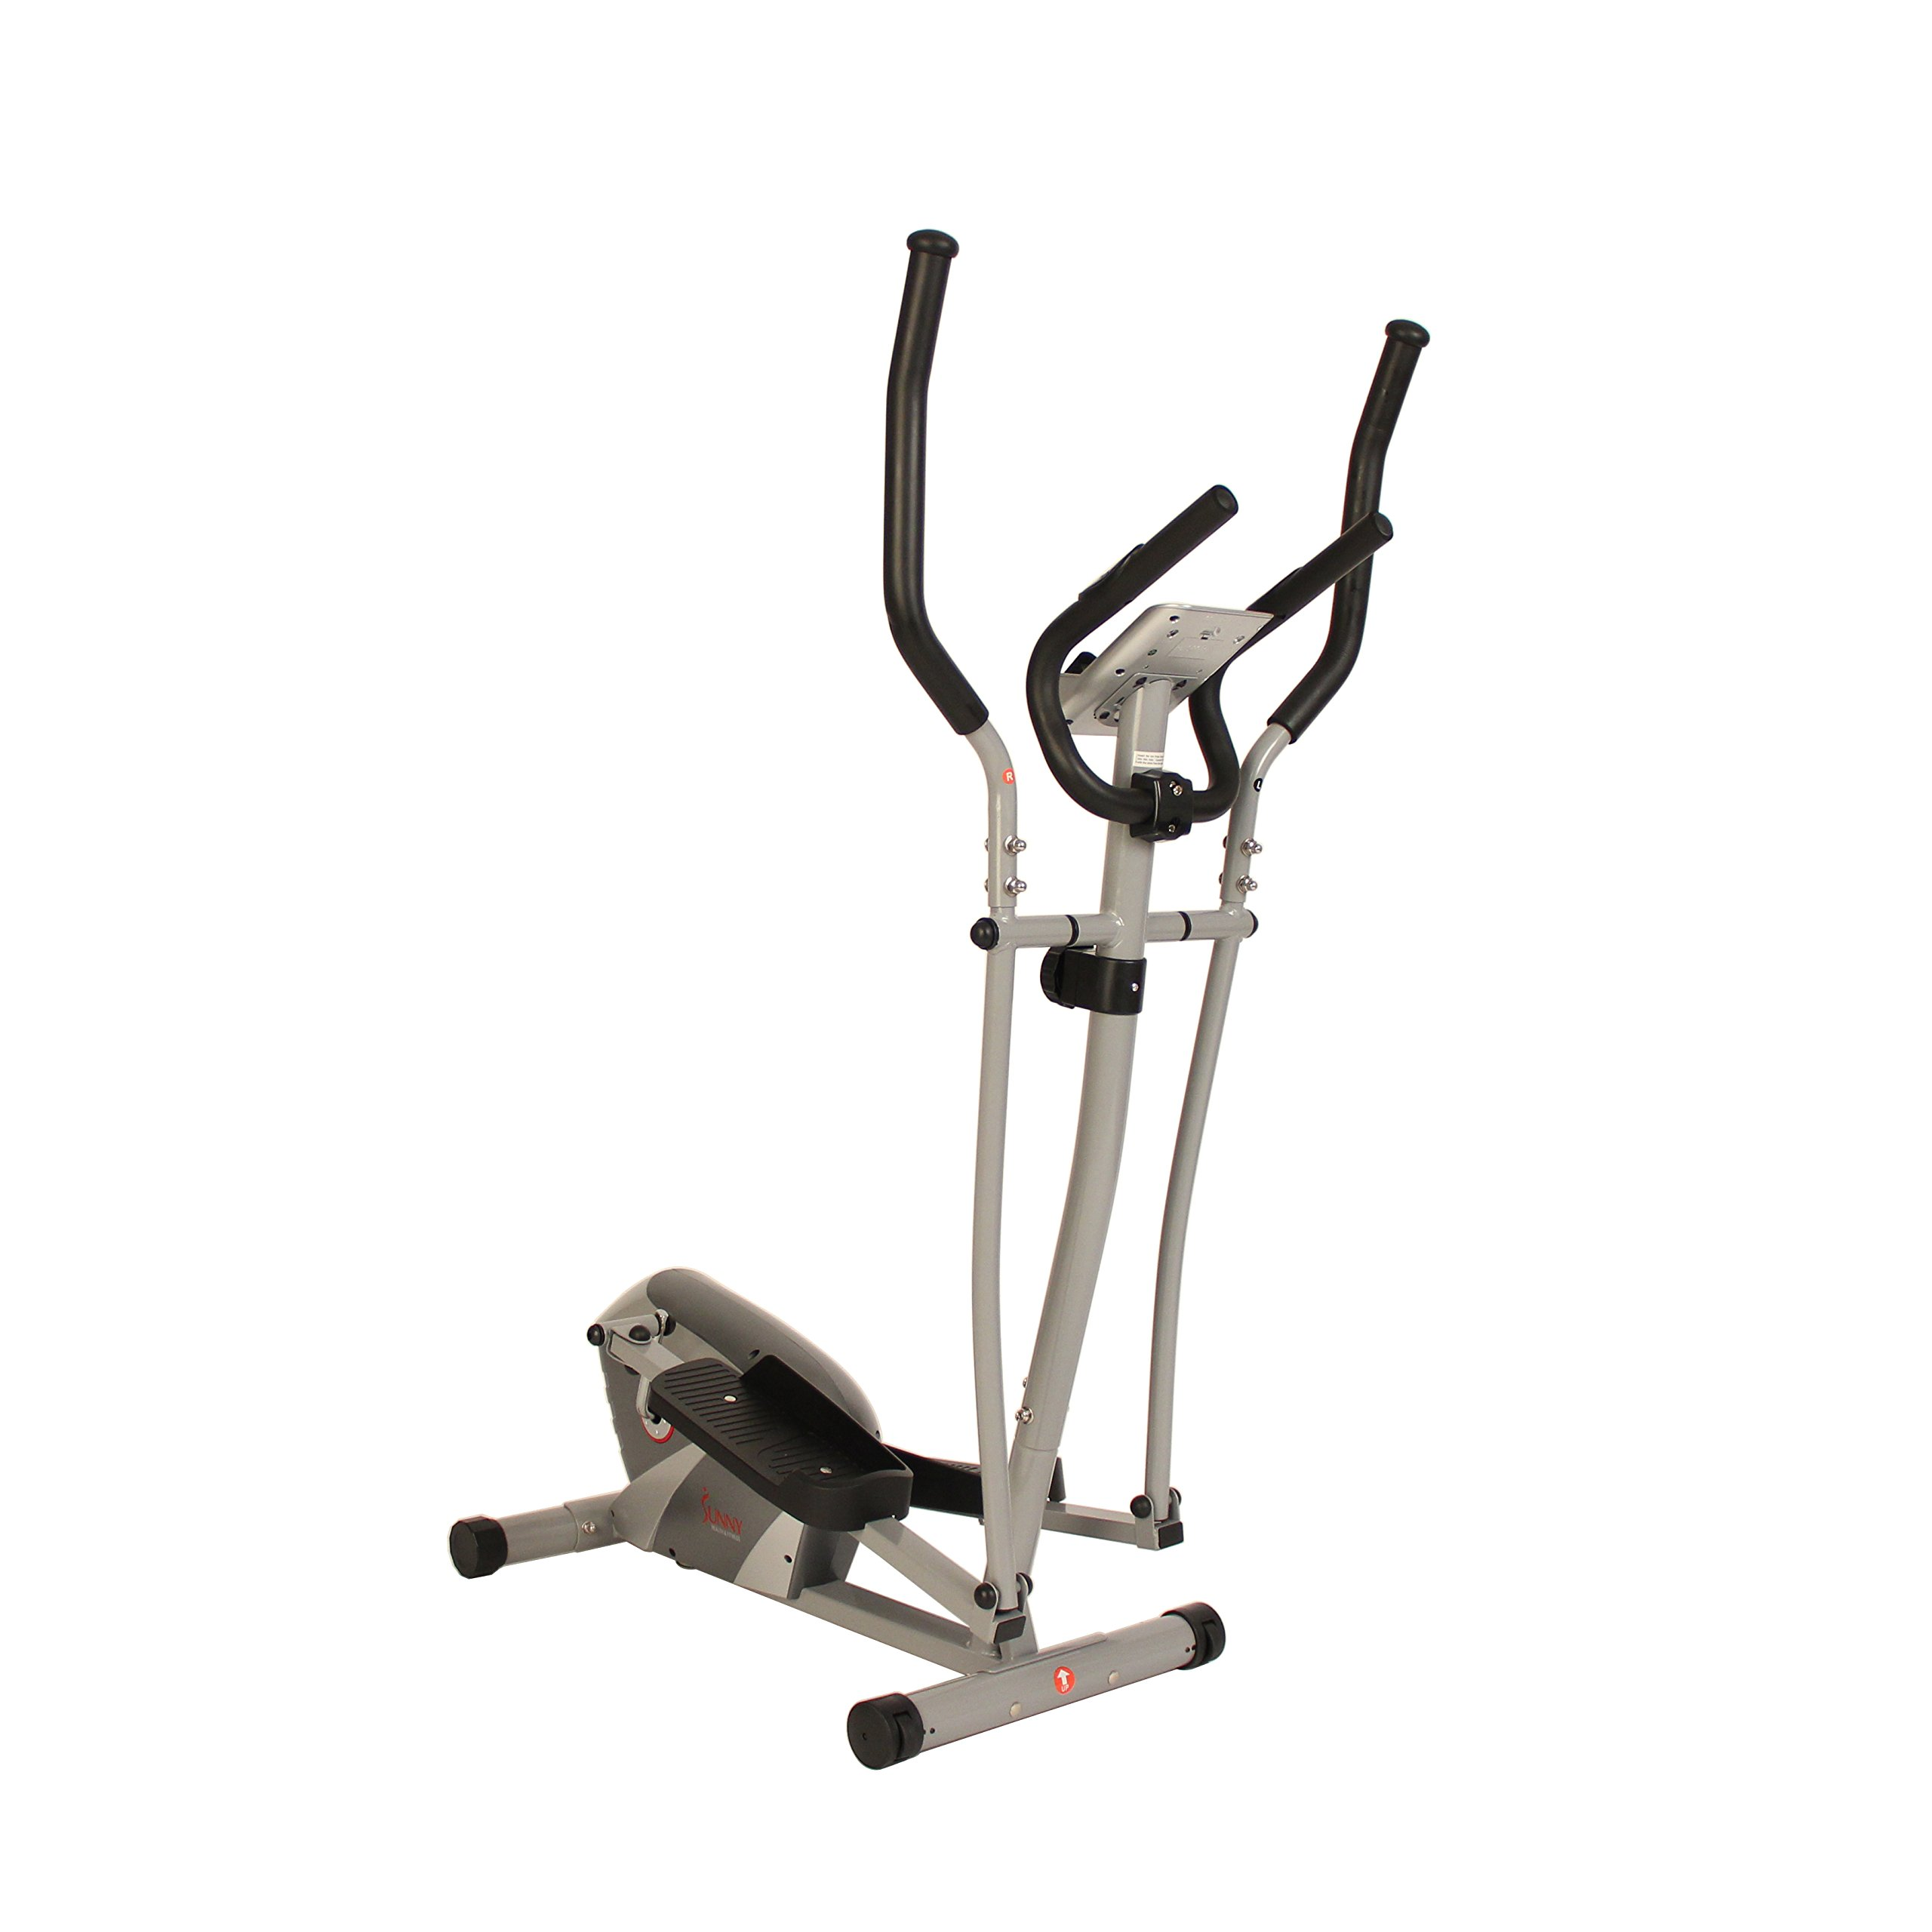 Sunny Health & Fitness SF-E3628 Magnetic Elliptical Trainer Elliptical Machine w/Tablet Holder, LCD Monitor and Heart Rate Monitoring